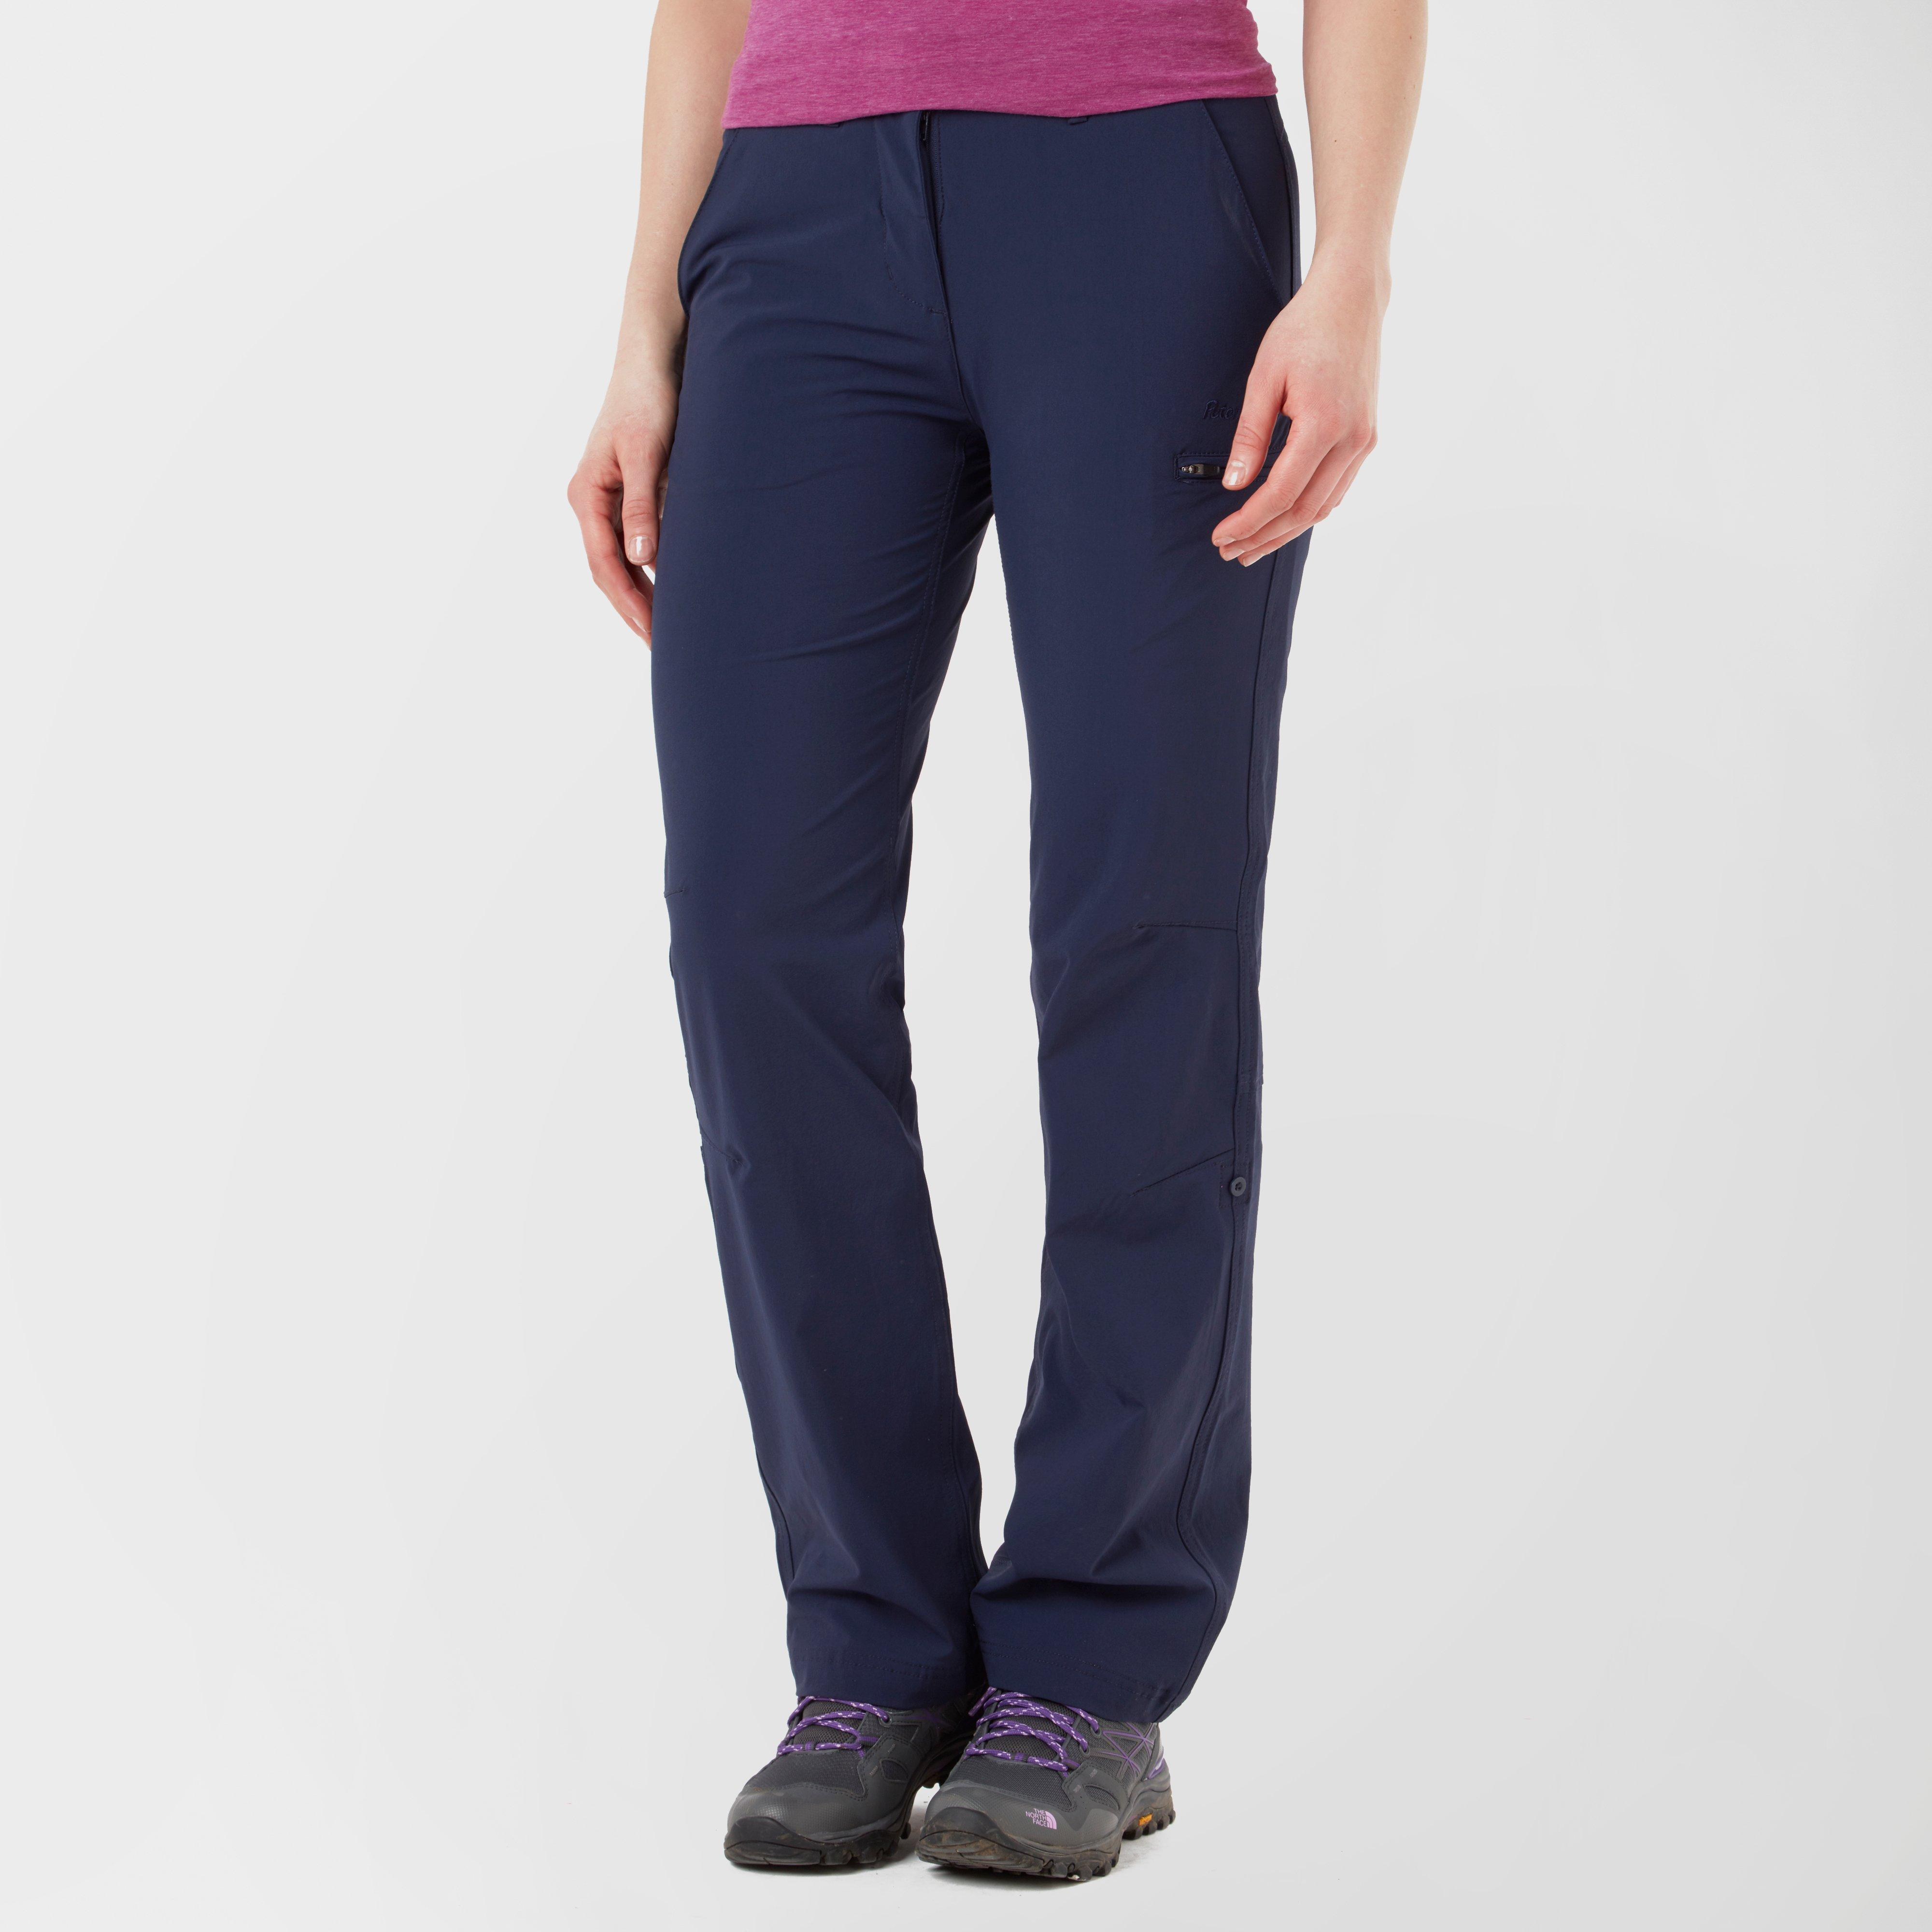 Peter Storm Peter Storm womens Hike Stretch Roll-Up Pant - Navy, Navy